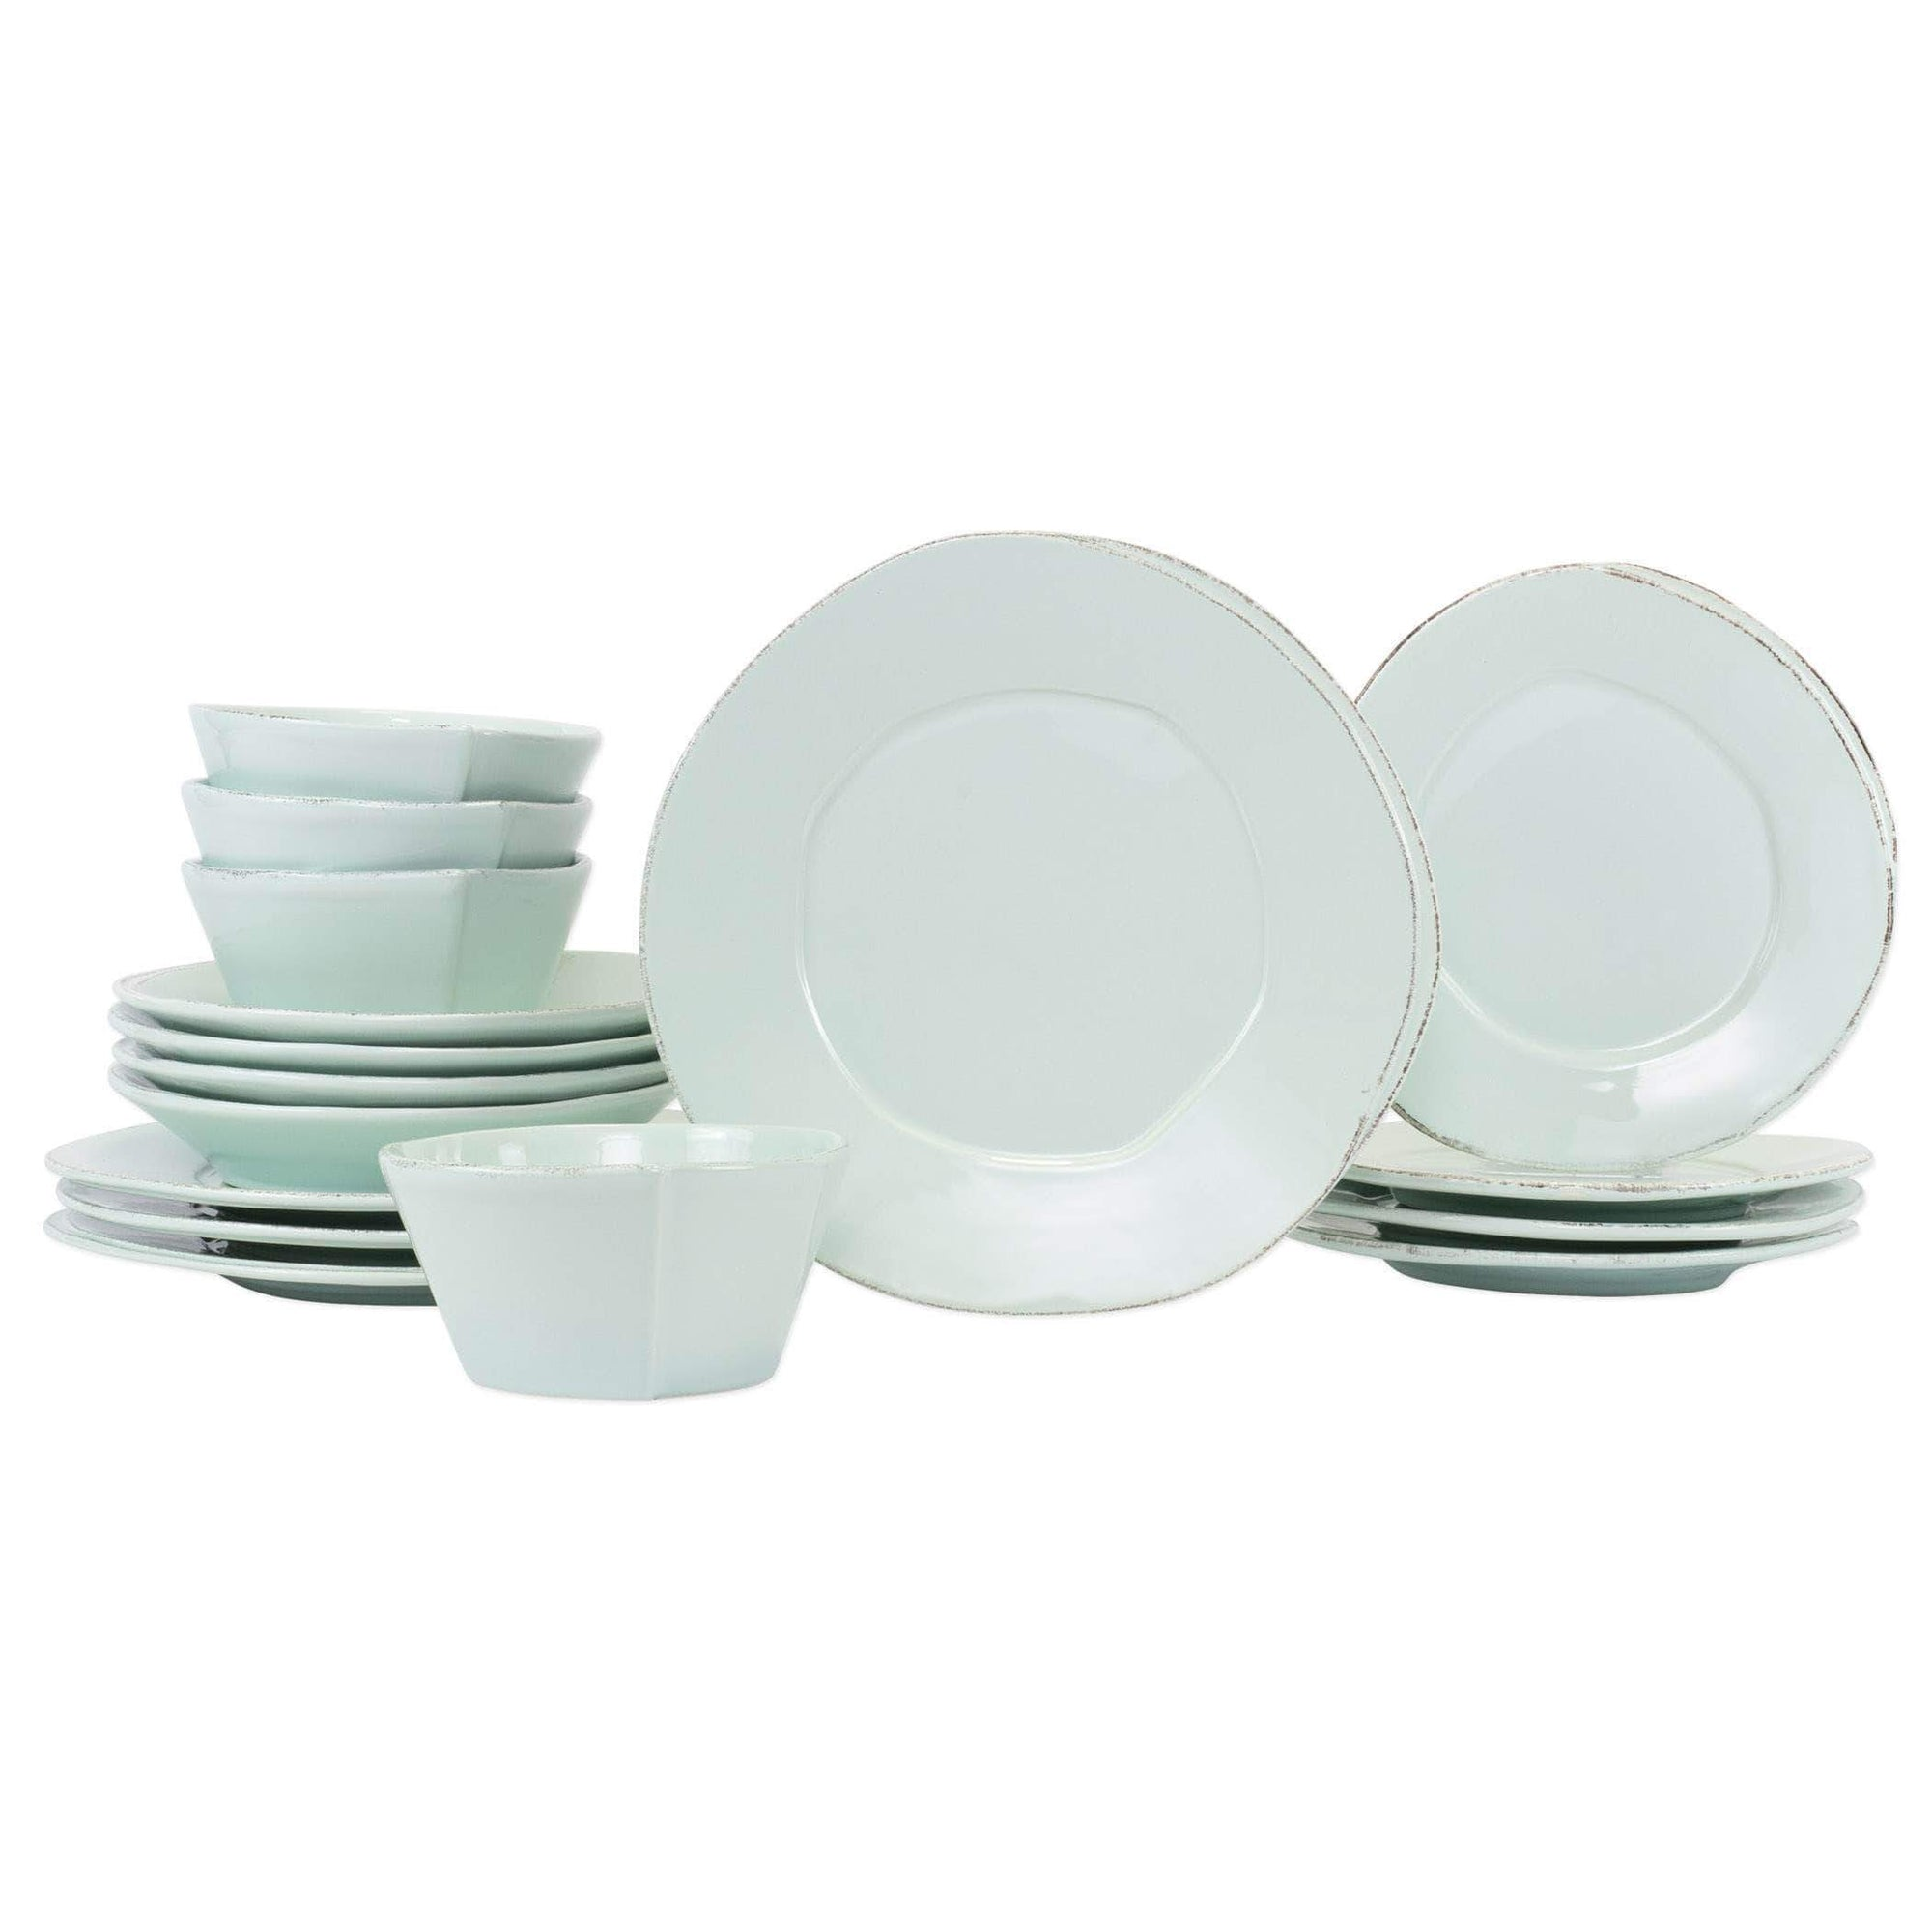 Vietri Vietri Lastra Sixteen-Piece Place Setting - Available in 6 Colors White LAS-2600WS-16N